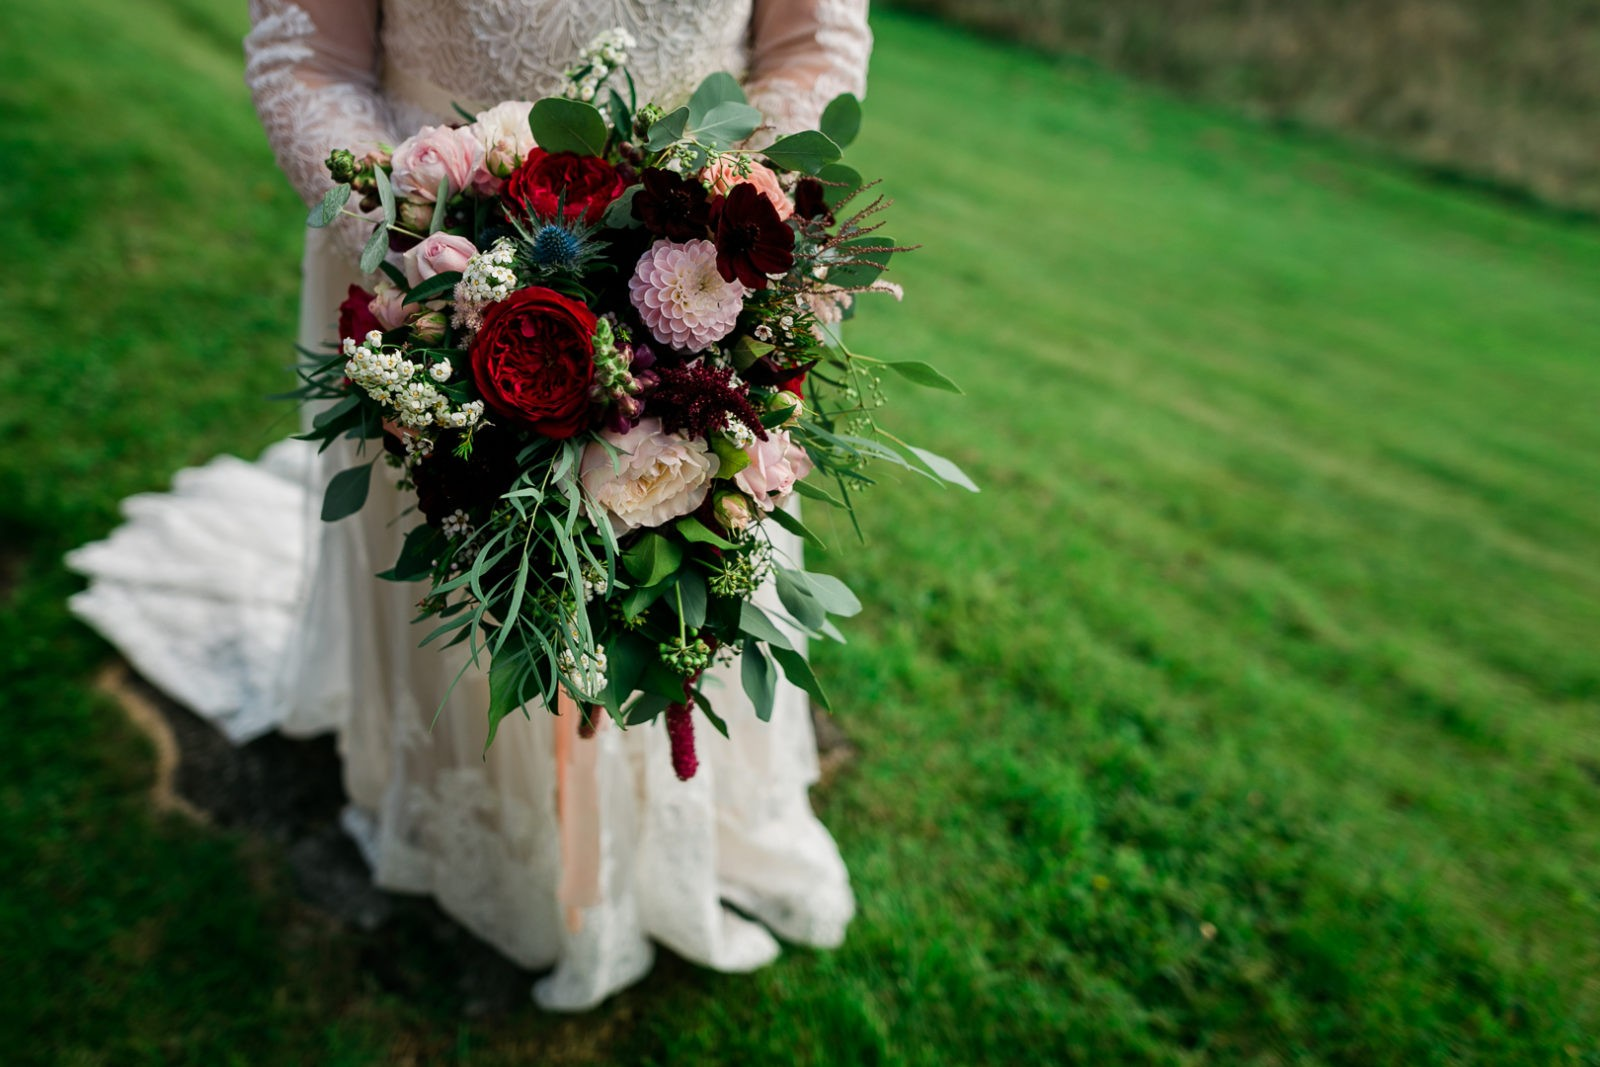 Wild and Beautiful - Burgundy Red Pink and Green Wedding Bouquet at My Beauty Bunny's Scotland Wedding